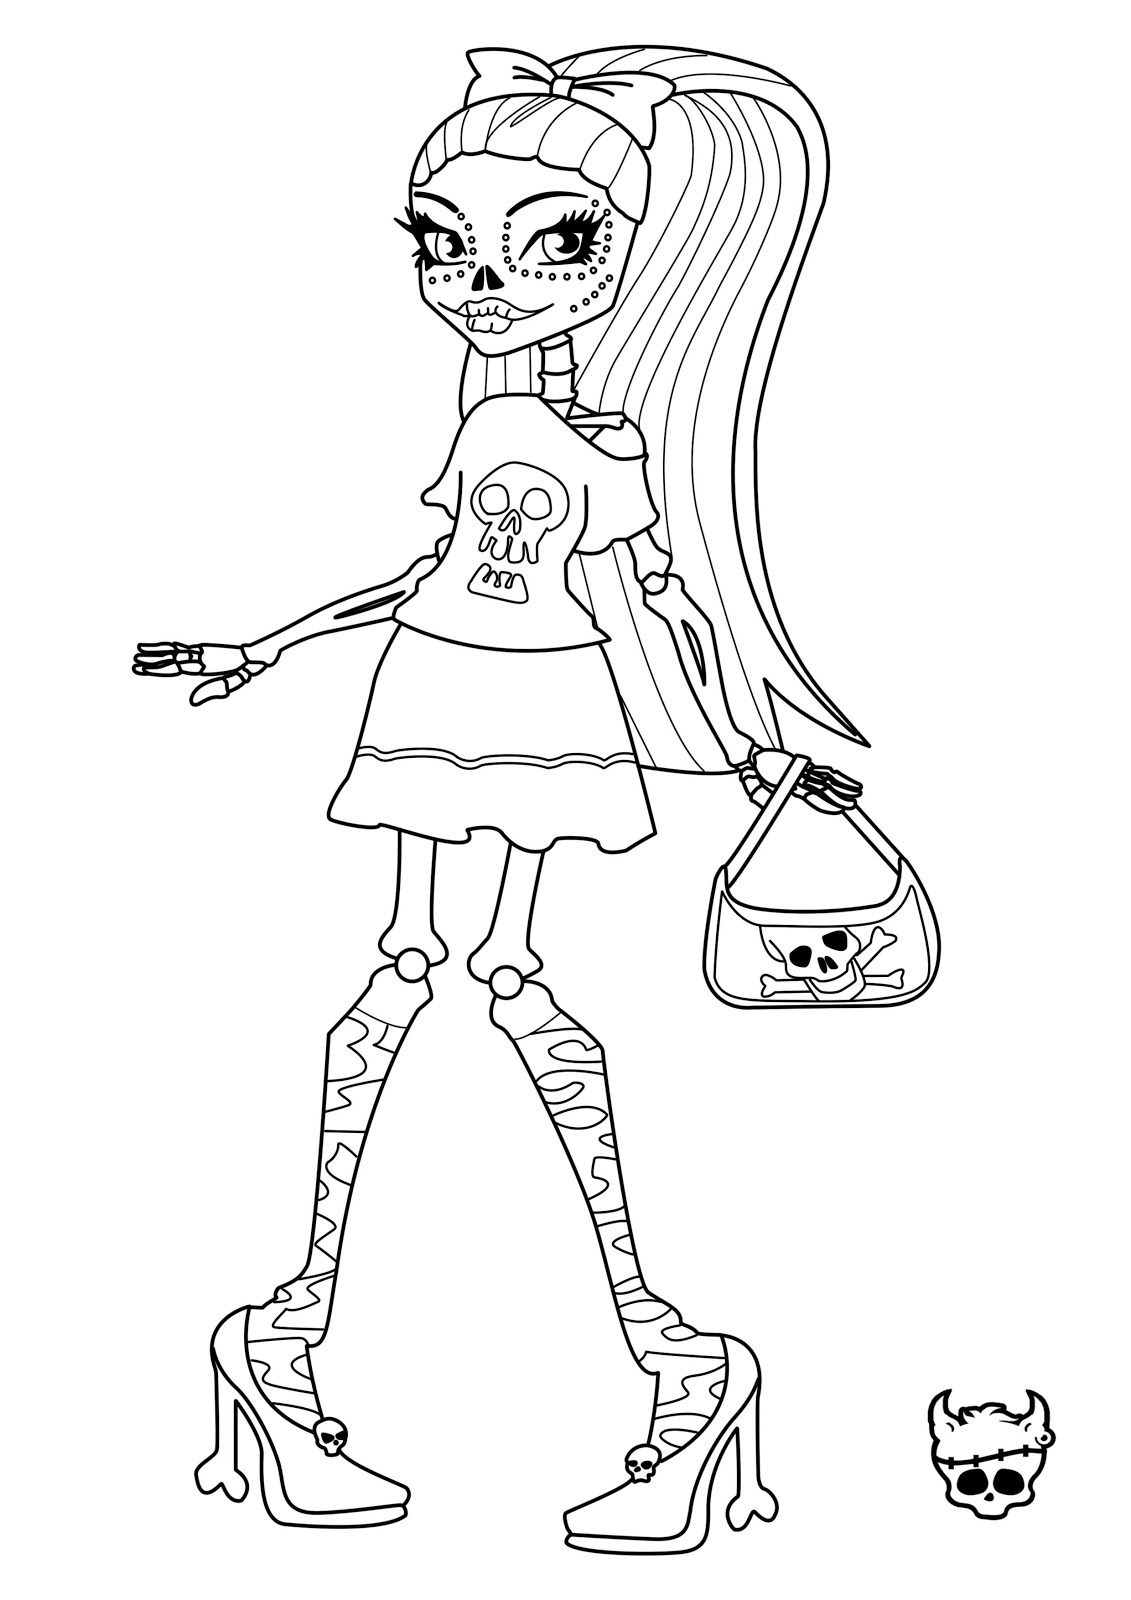 Tattoo Monster high skelita coloring pages Free Printable